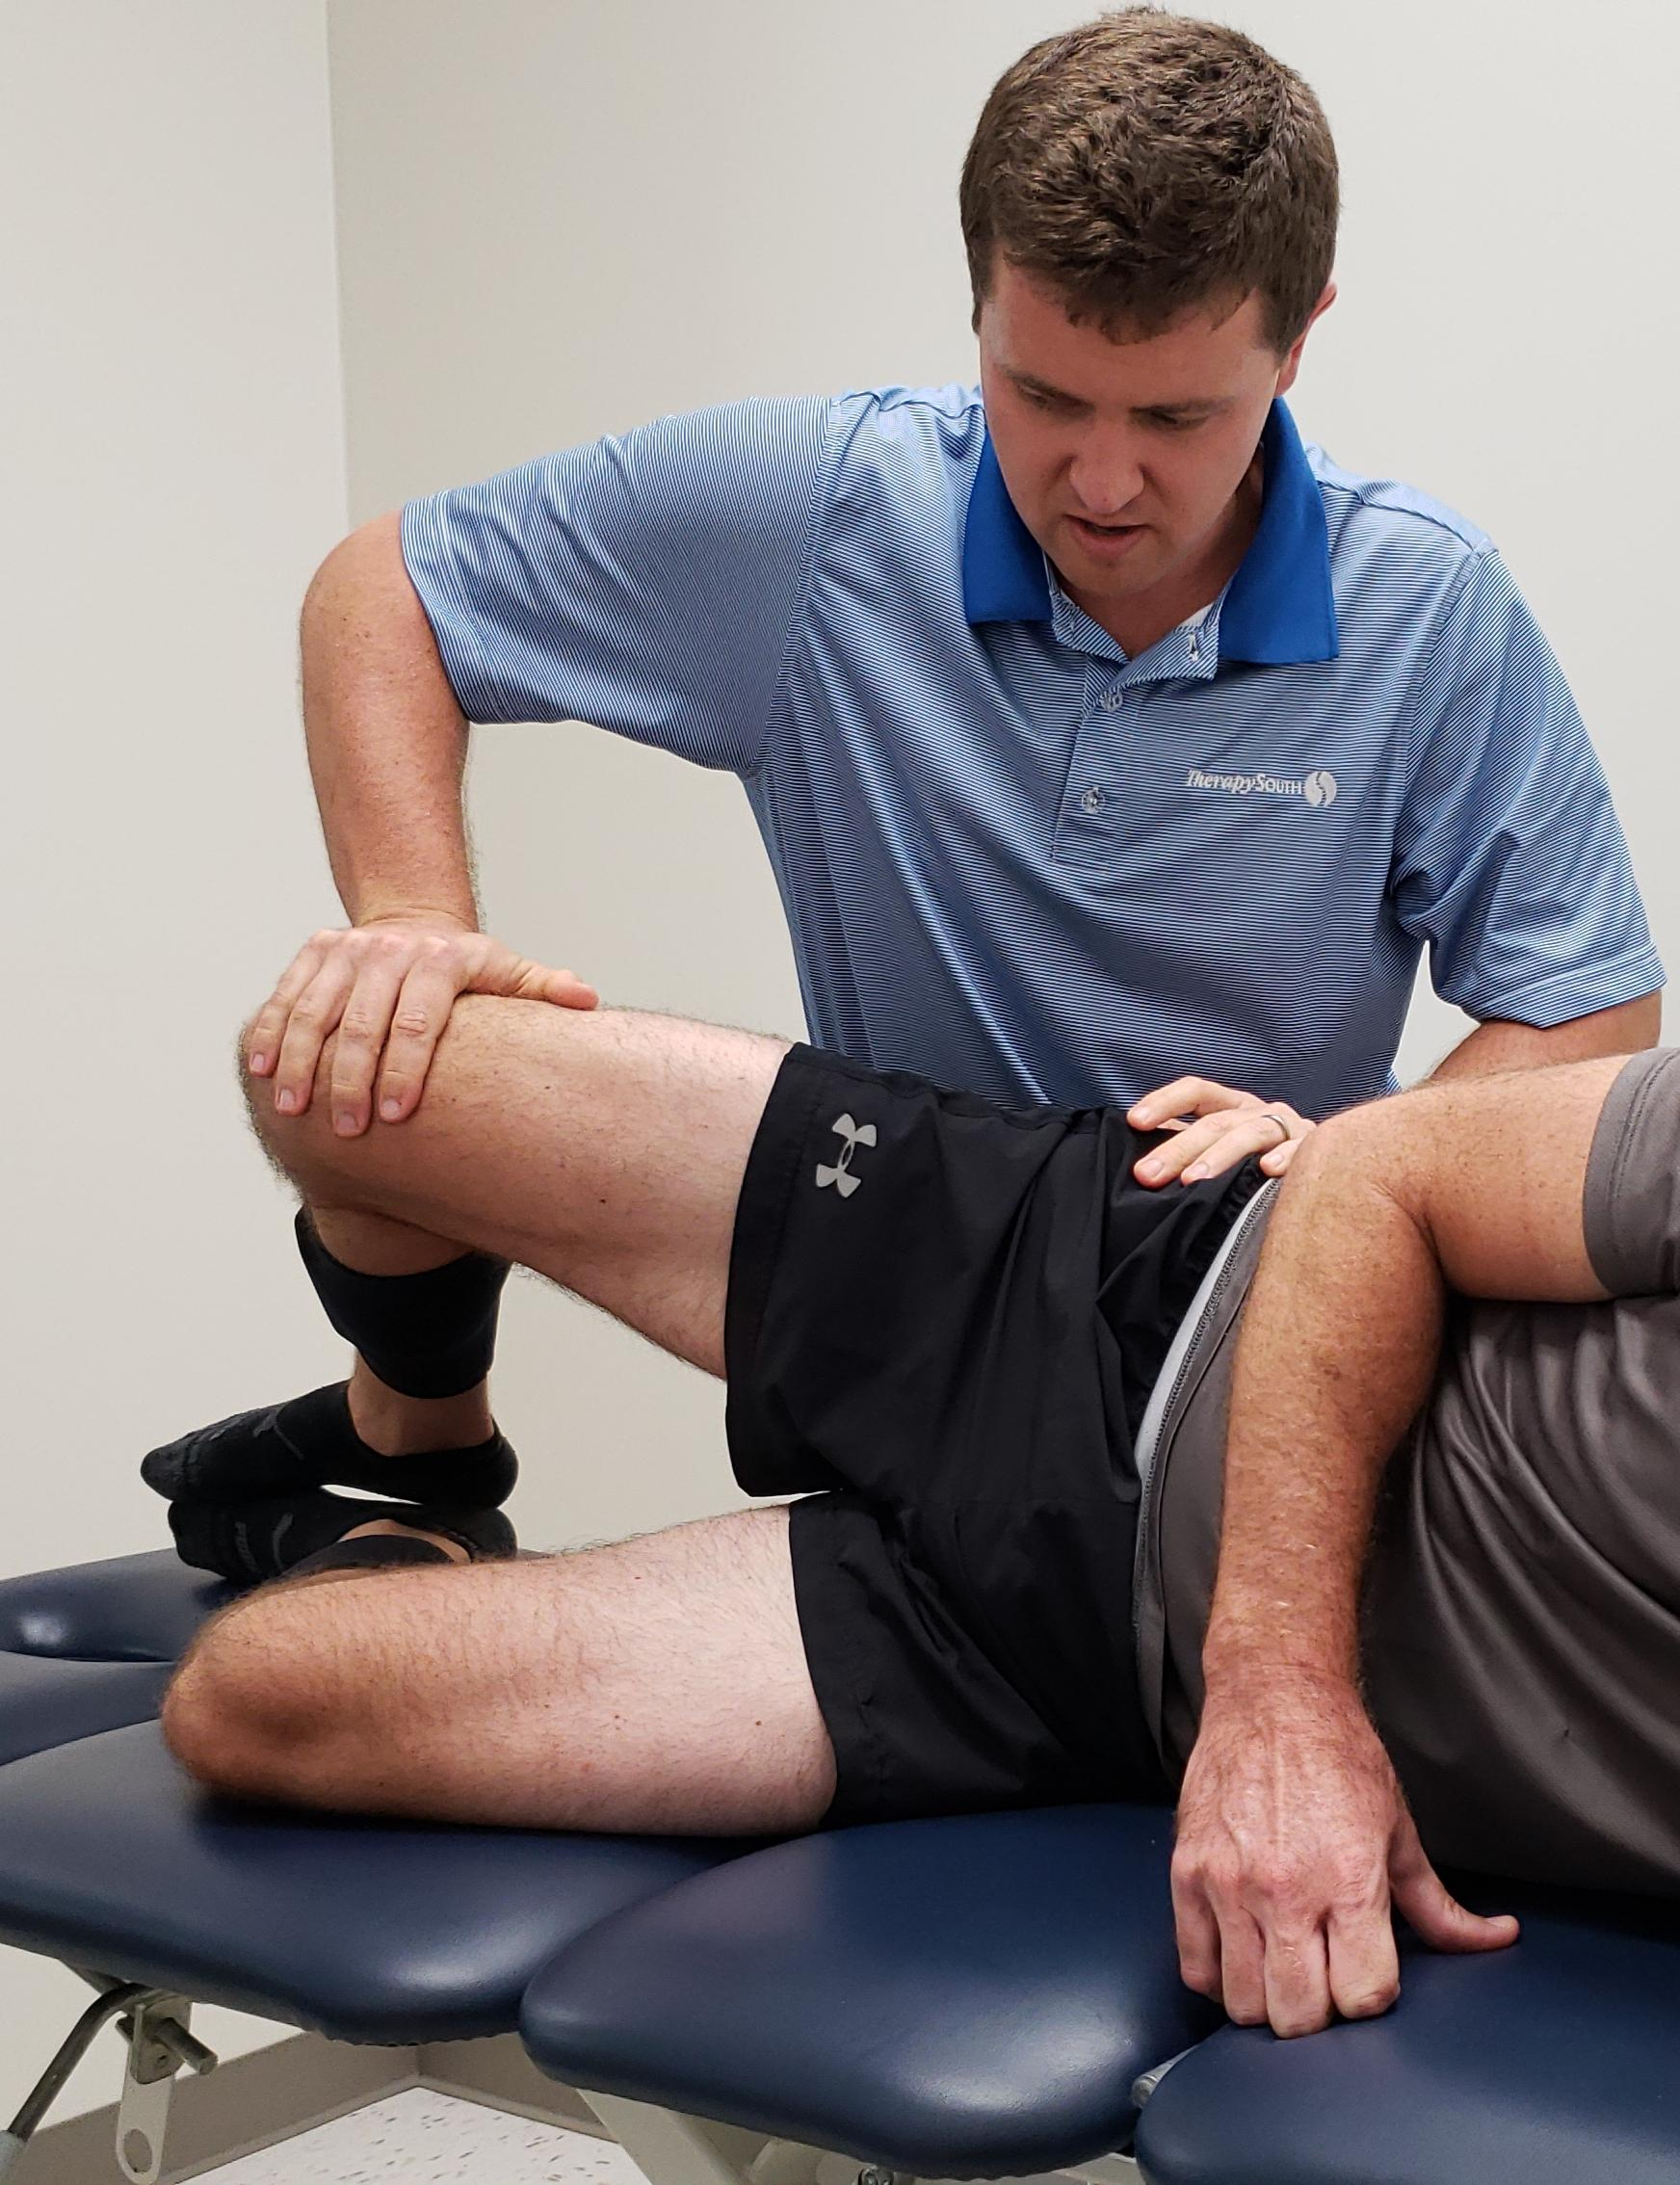 managing chronic pain with PT